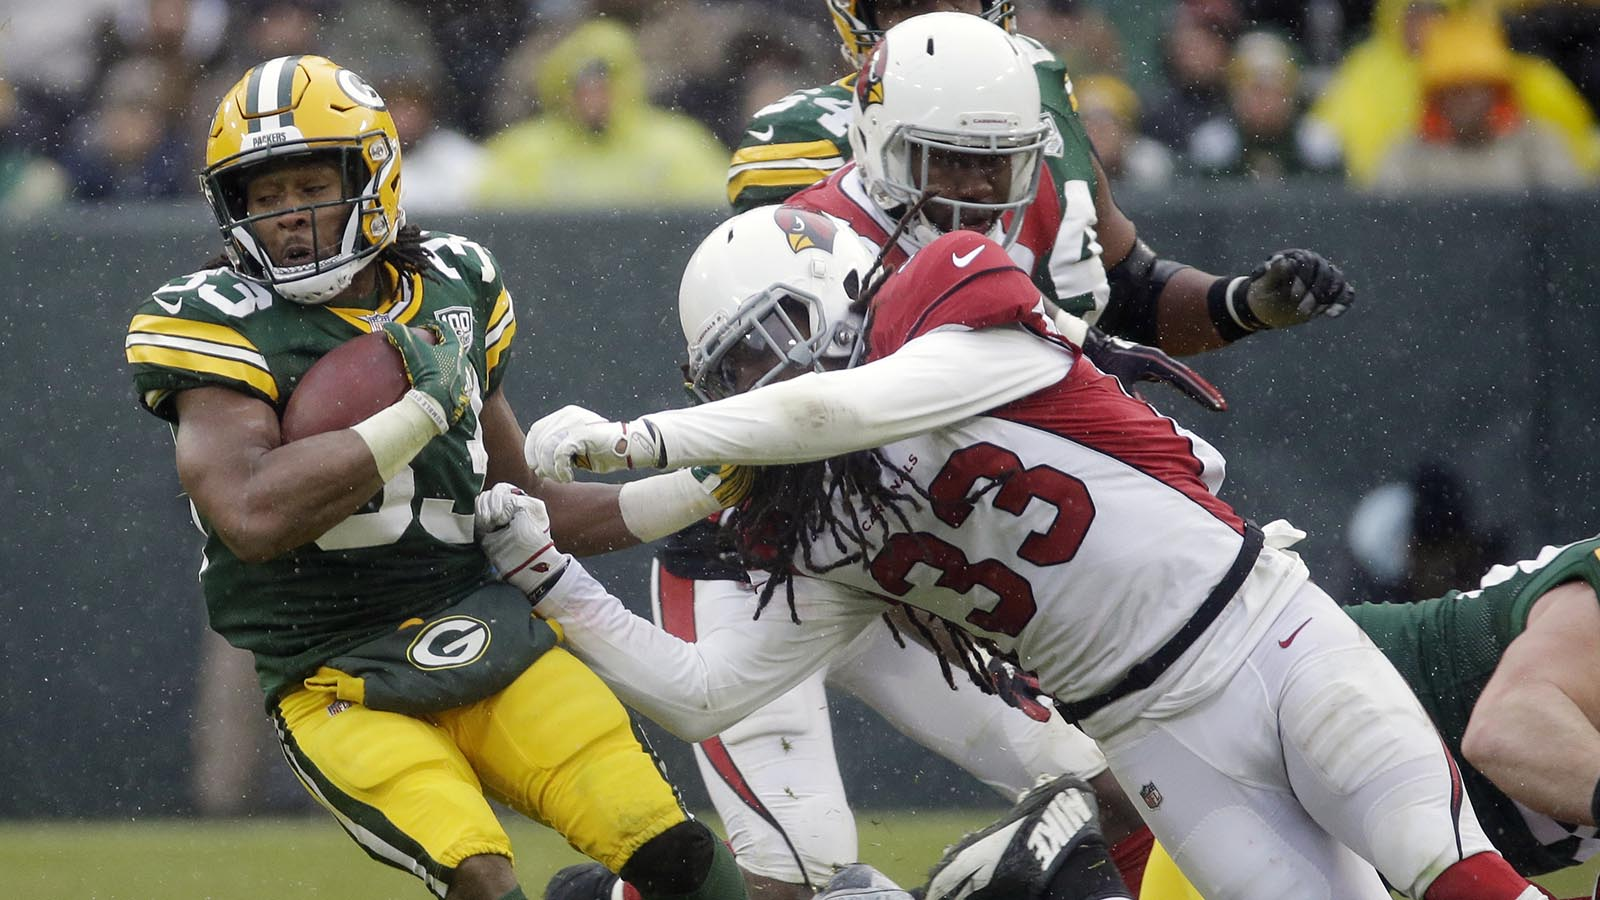 Green Bay Packers running back Aaron Jones is hit during a run by Arizona Cardinals defensive back Tre Boston during the second half.